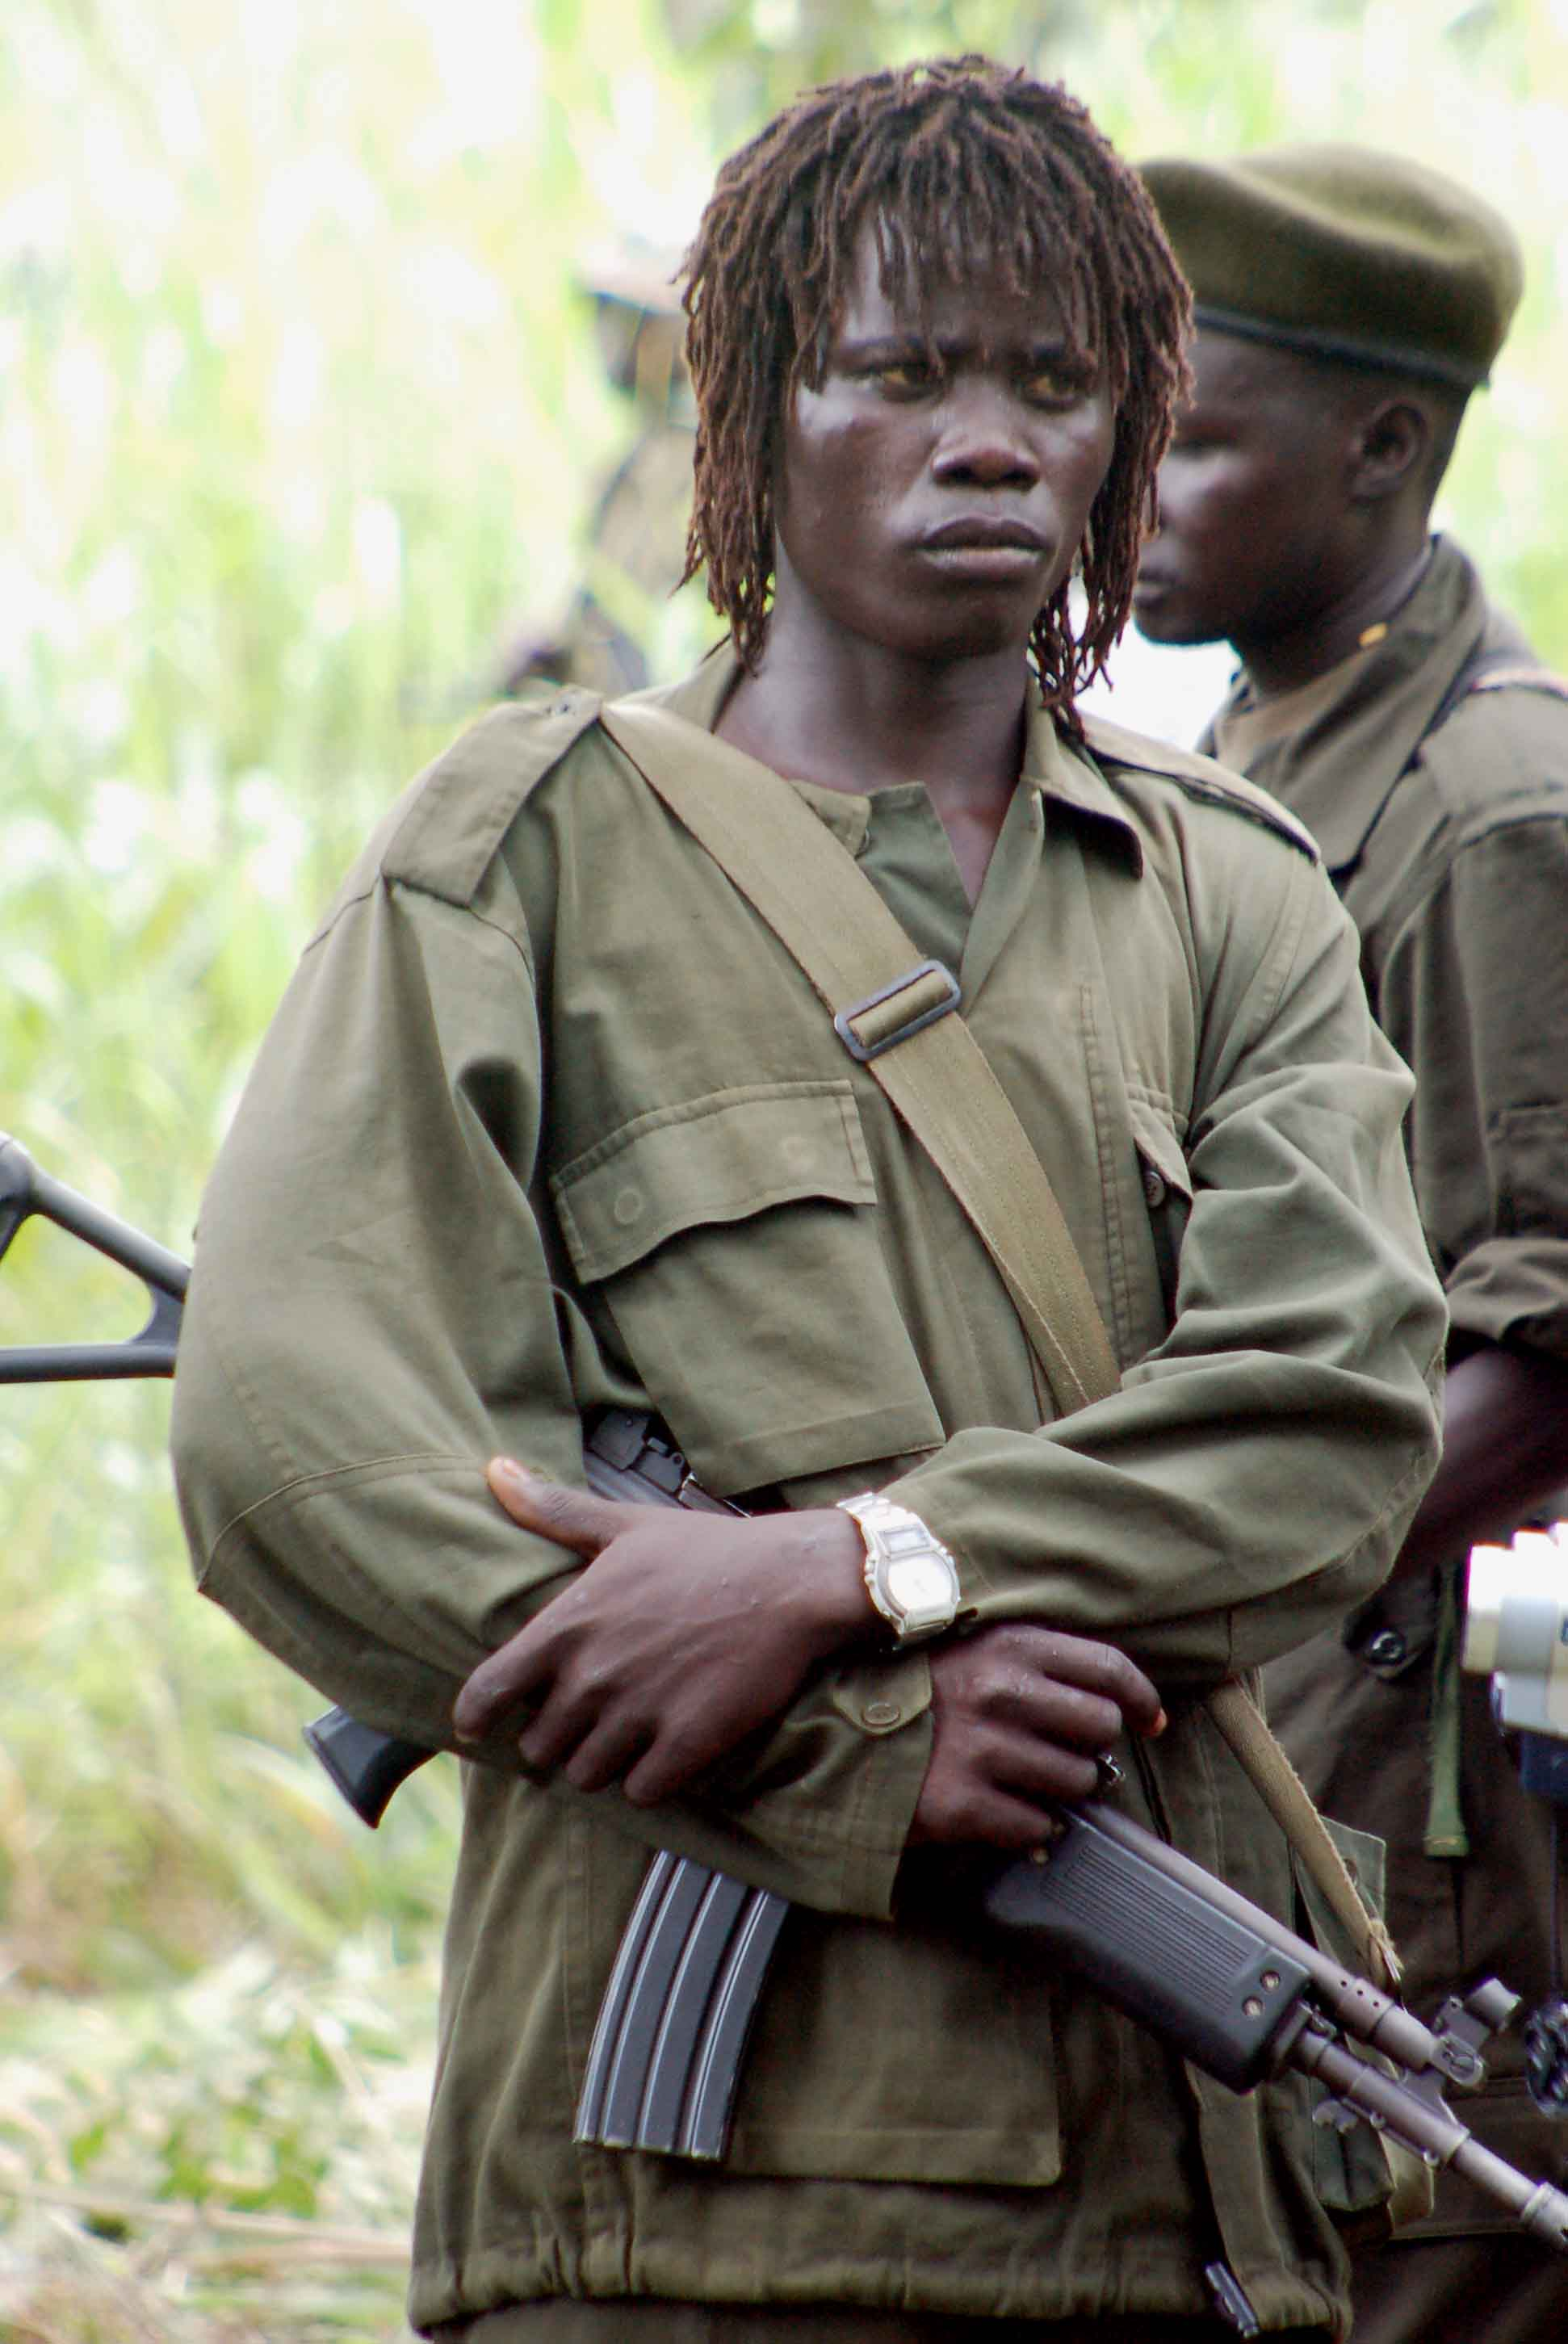 Military Advisers to Central Africa Only One Piece of the Puzzle